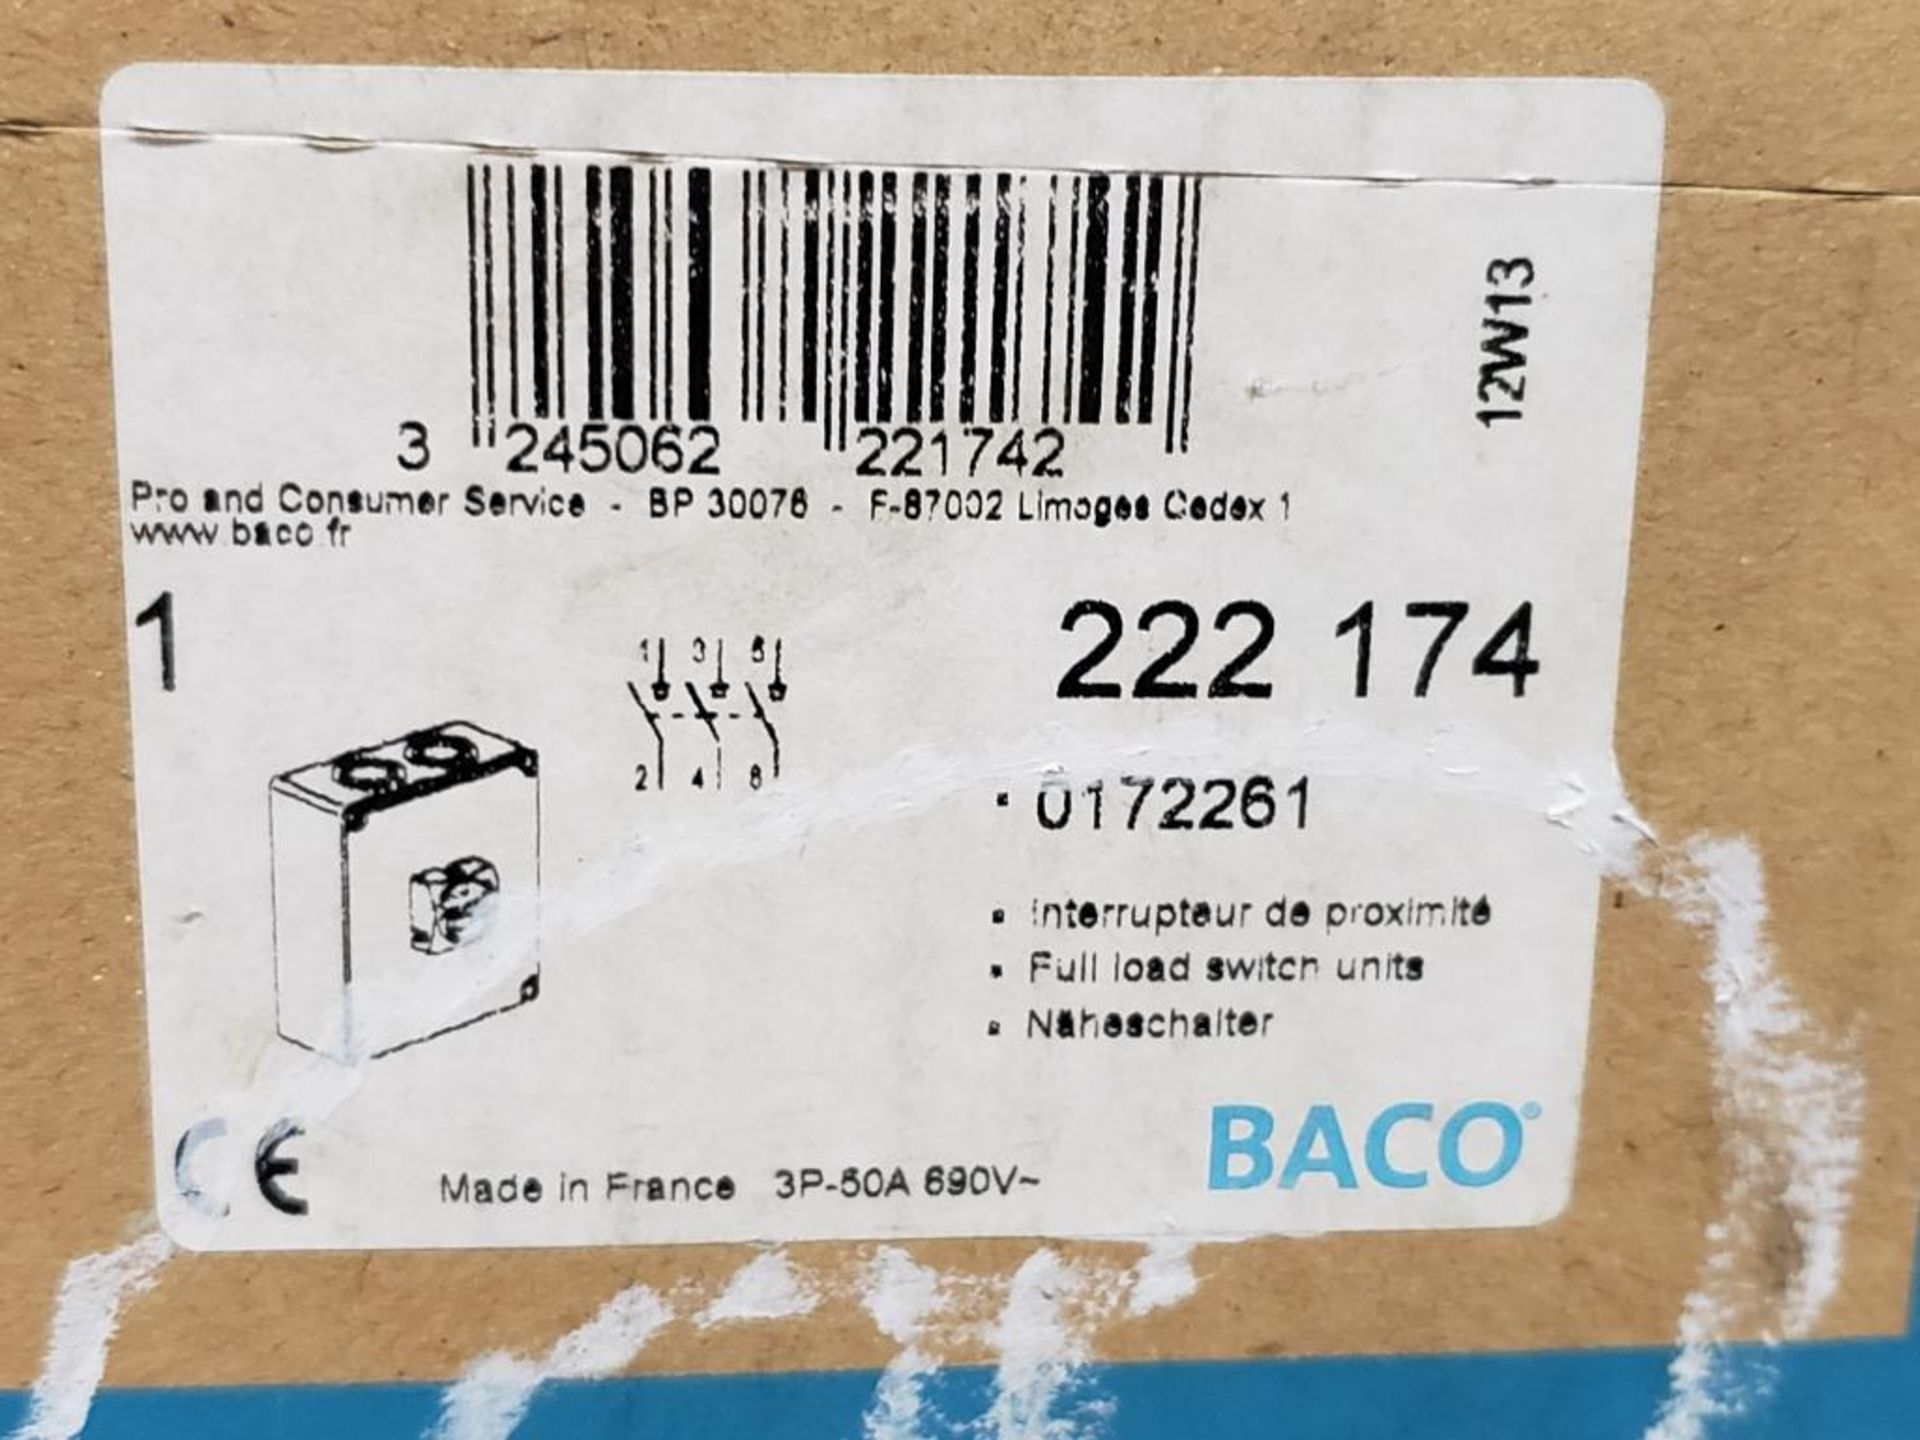 BACO 222-174 full load switch unit, safety on/off switch. - Image 2 of 4